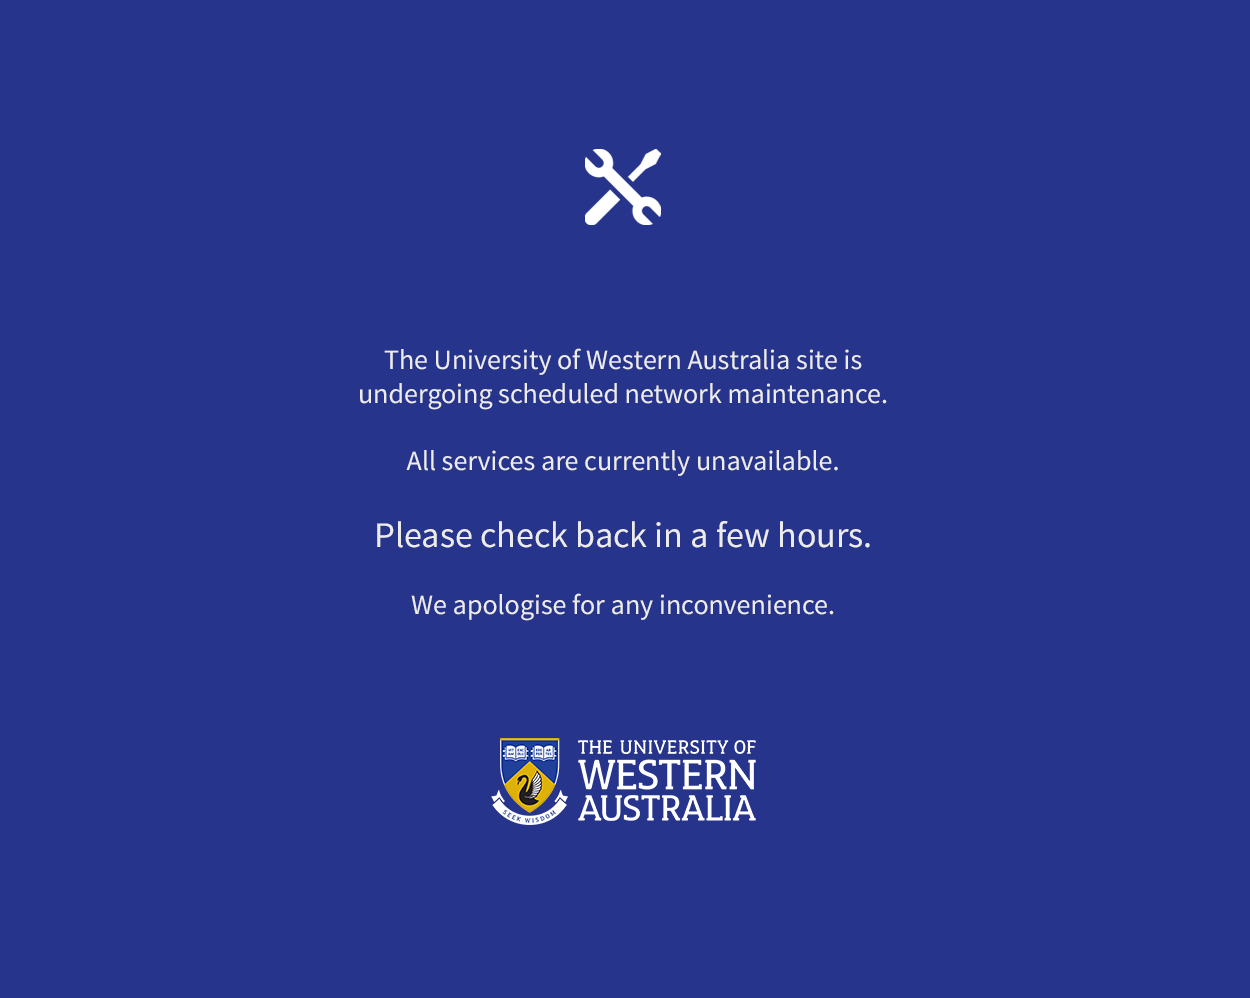 The University of Western Australia Site is undergoing scheduled network maintenance.  All service are currently unavailable.  Please check back in a few hours